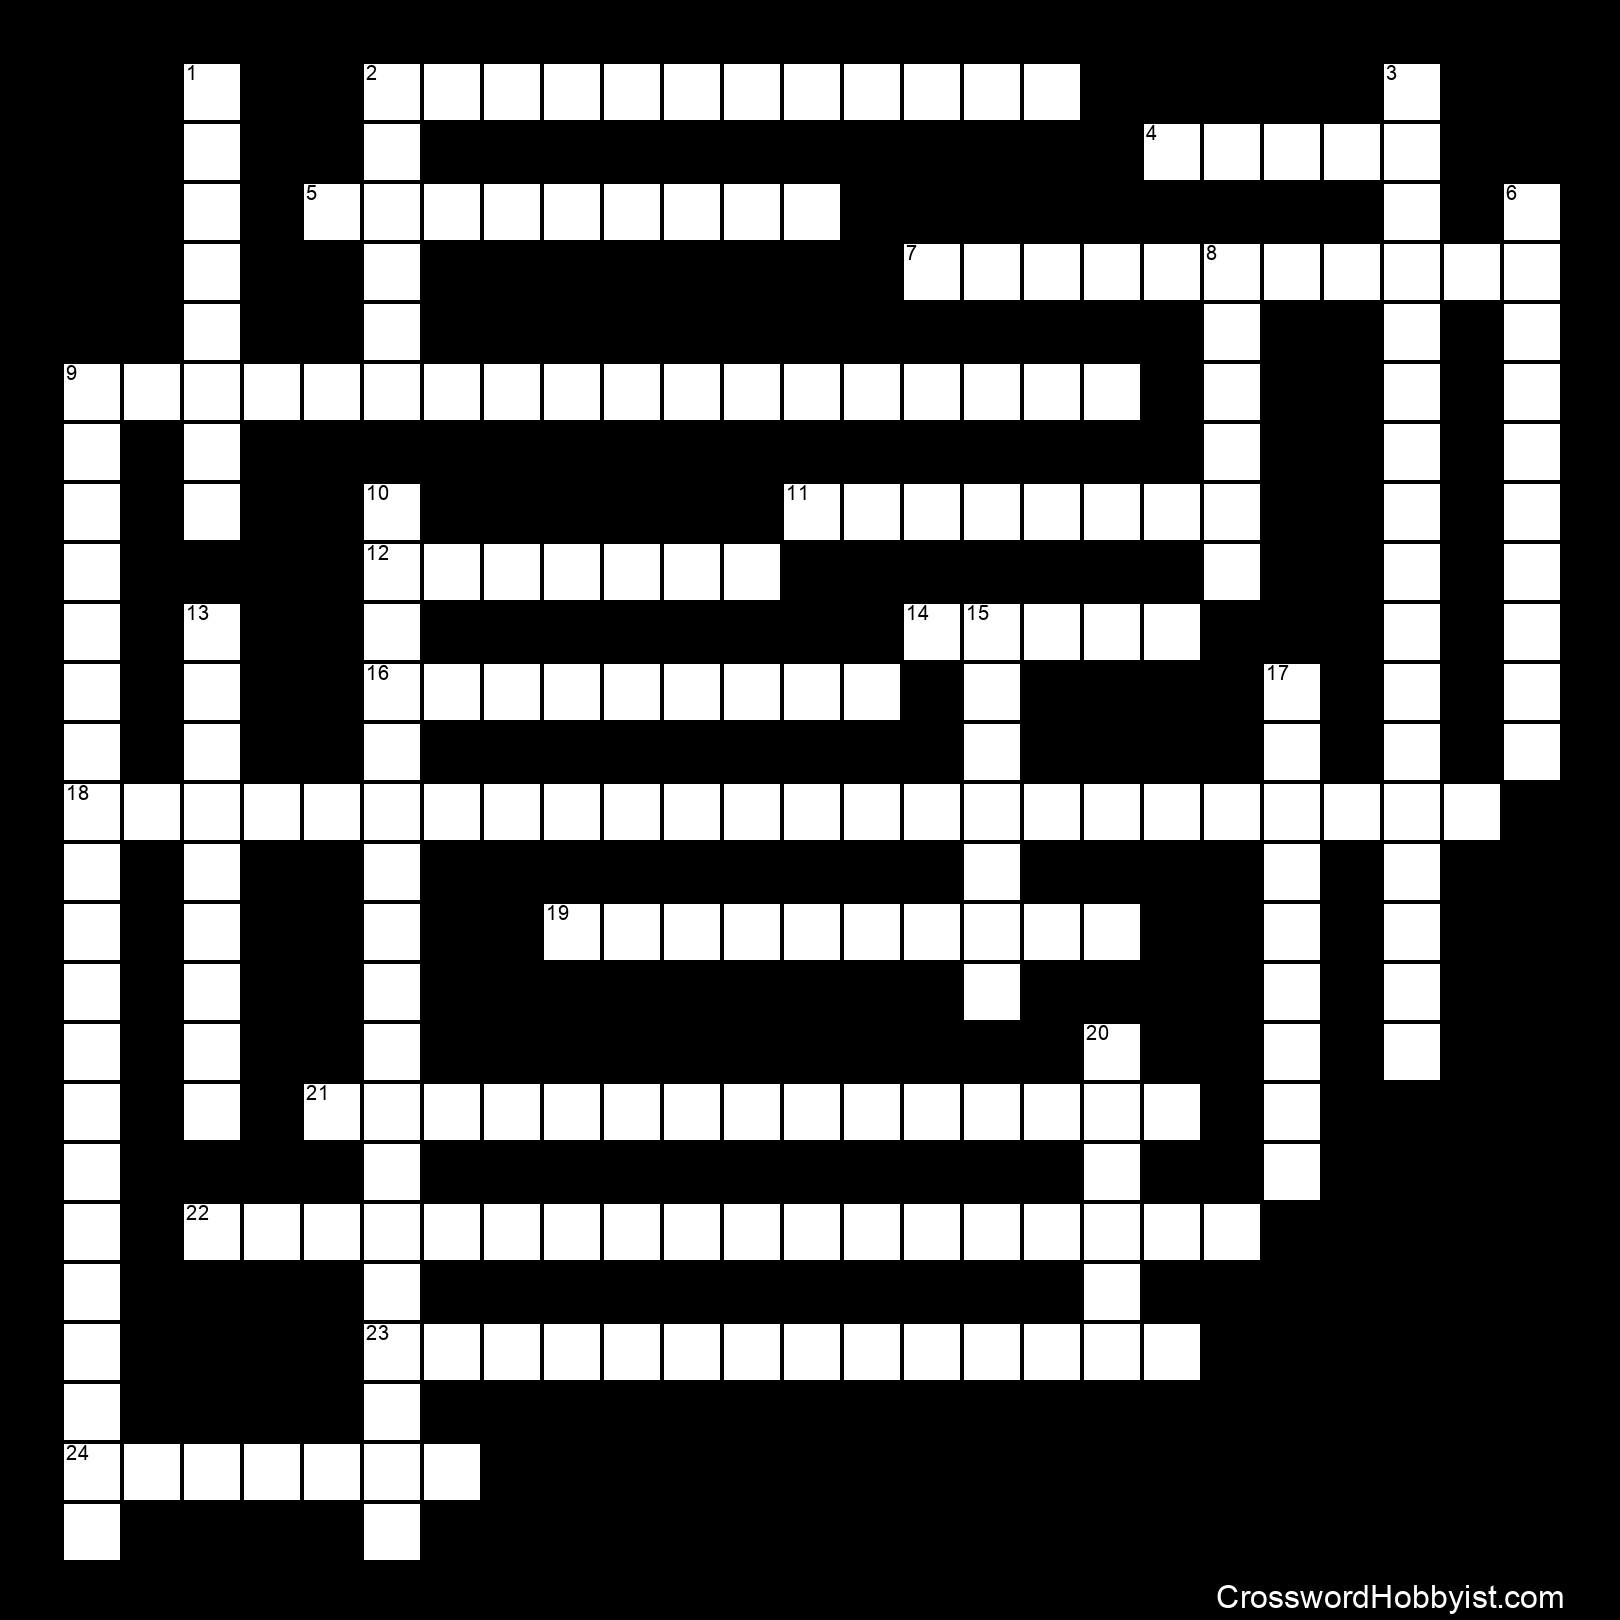 Ecology Review - Crossword Puzzle